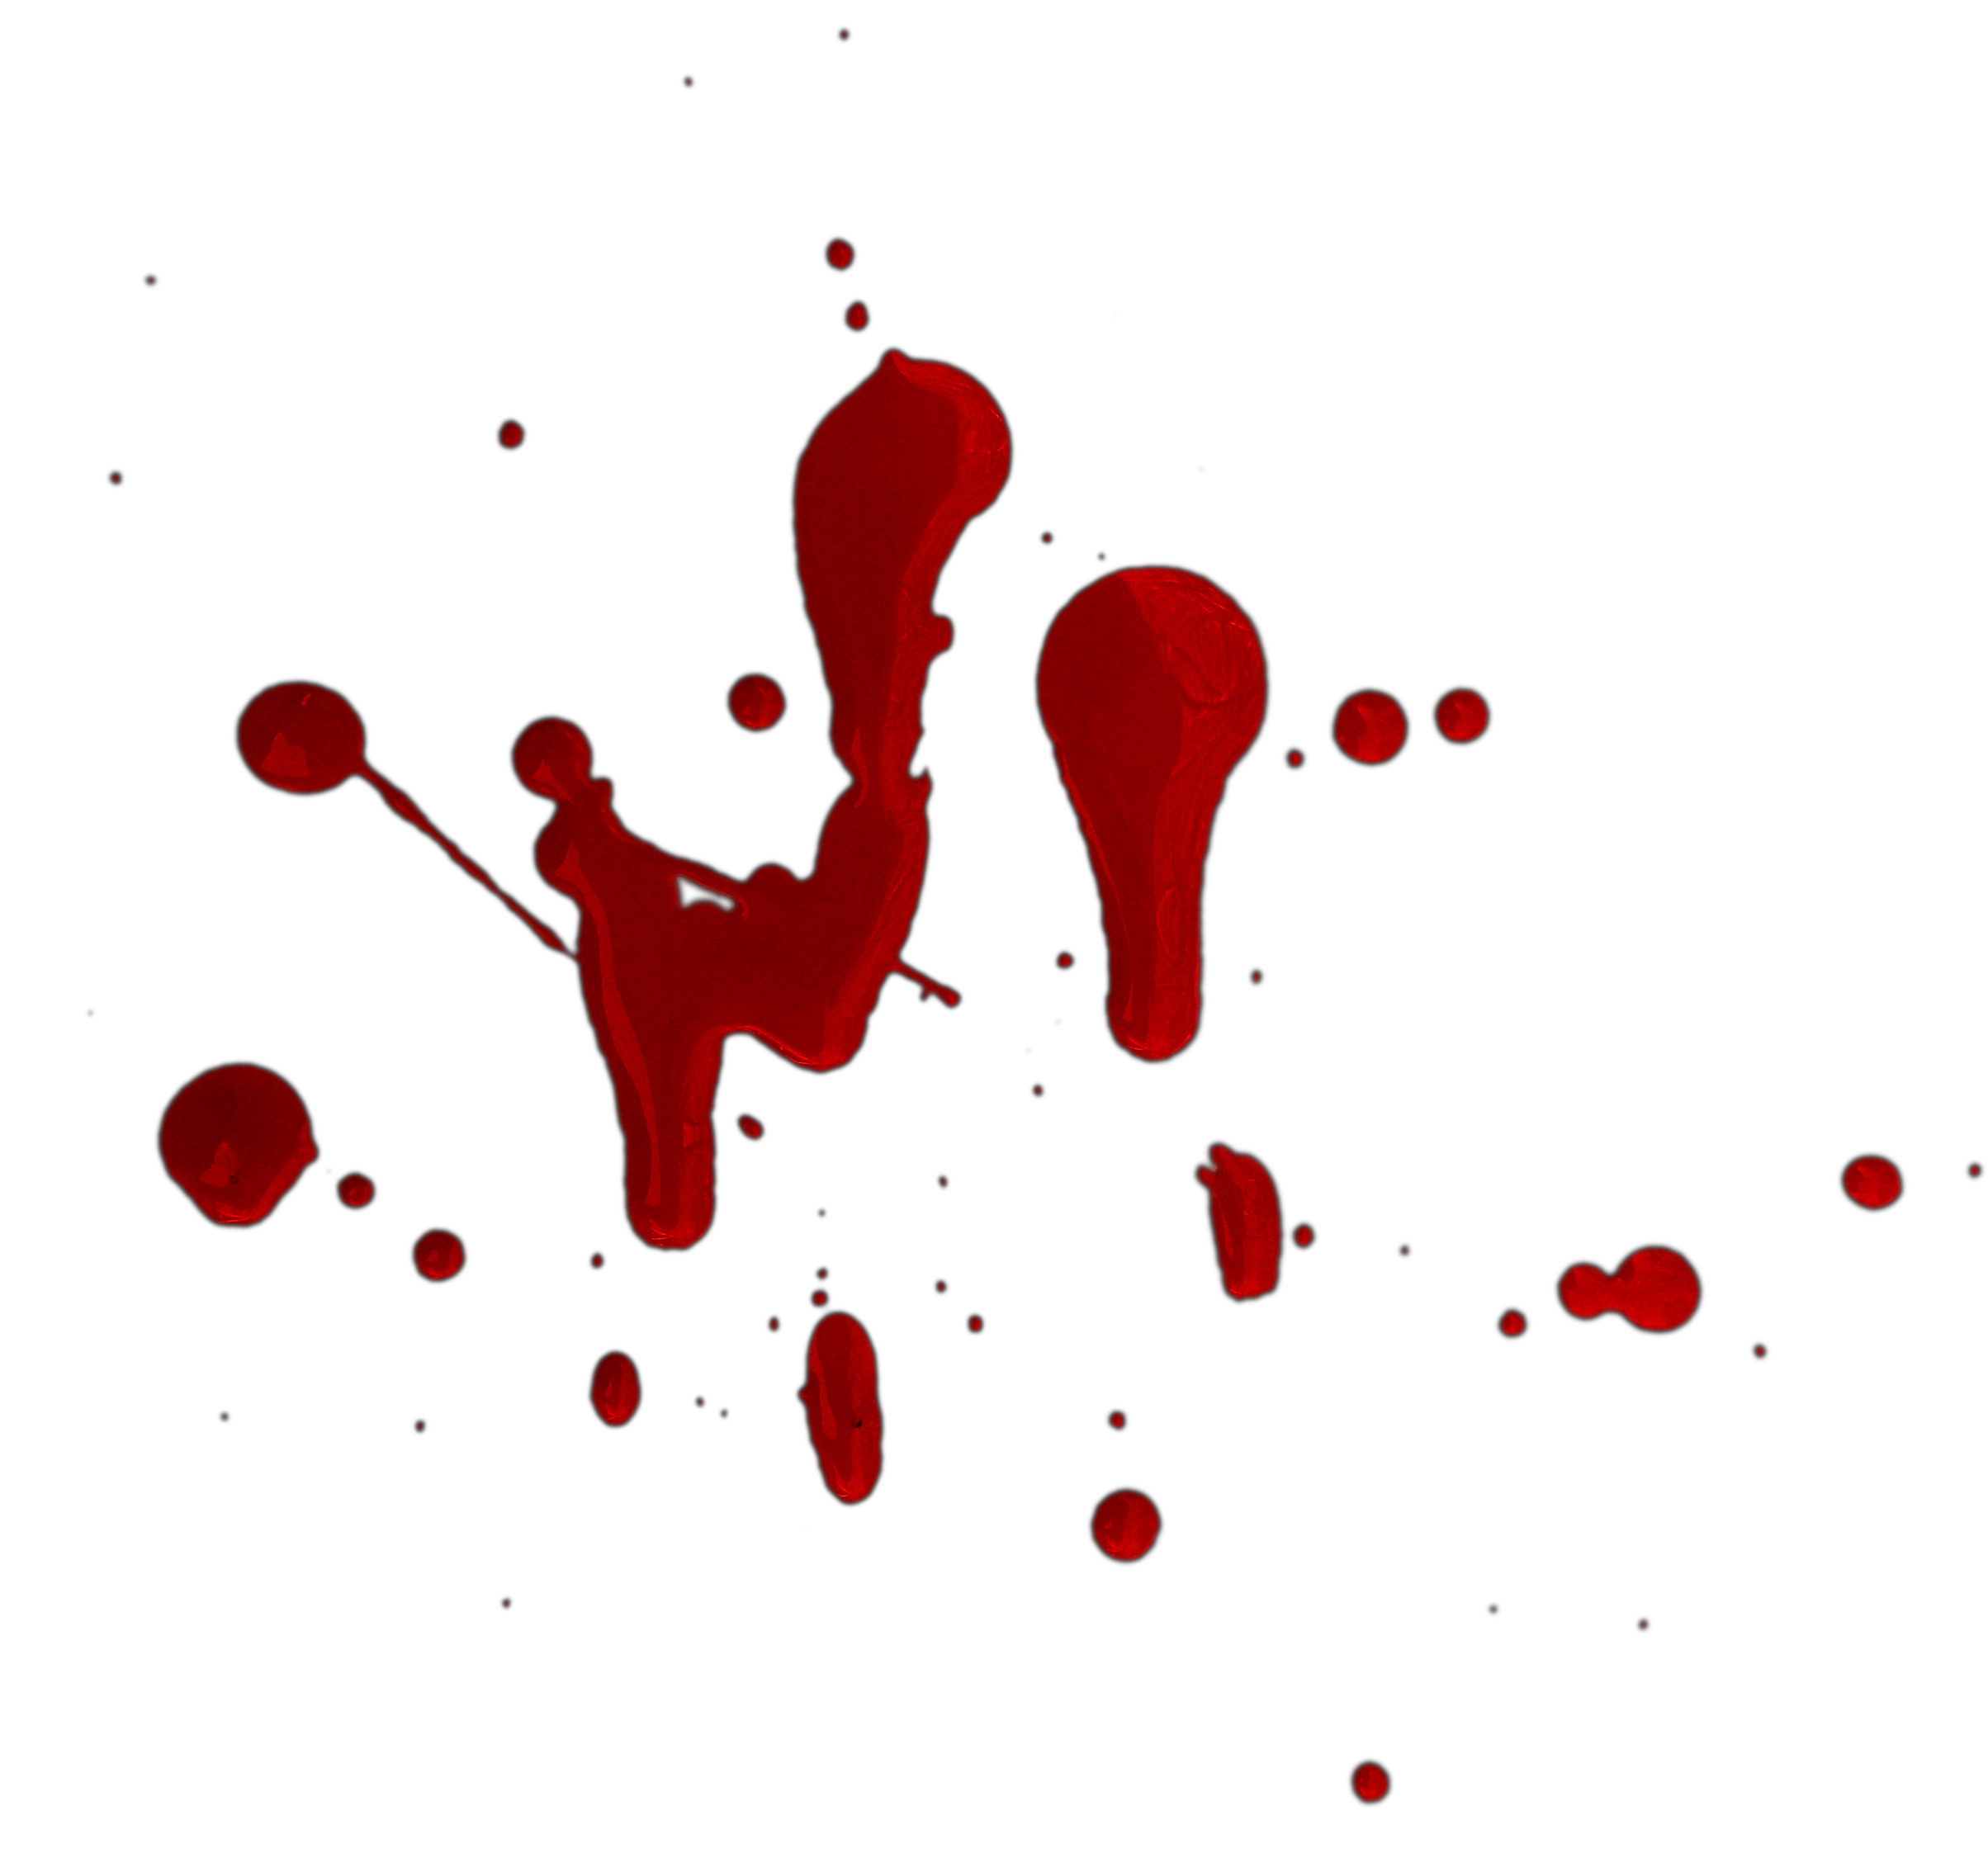 Drip images free icons. Blood explosion png